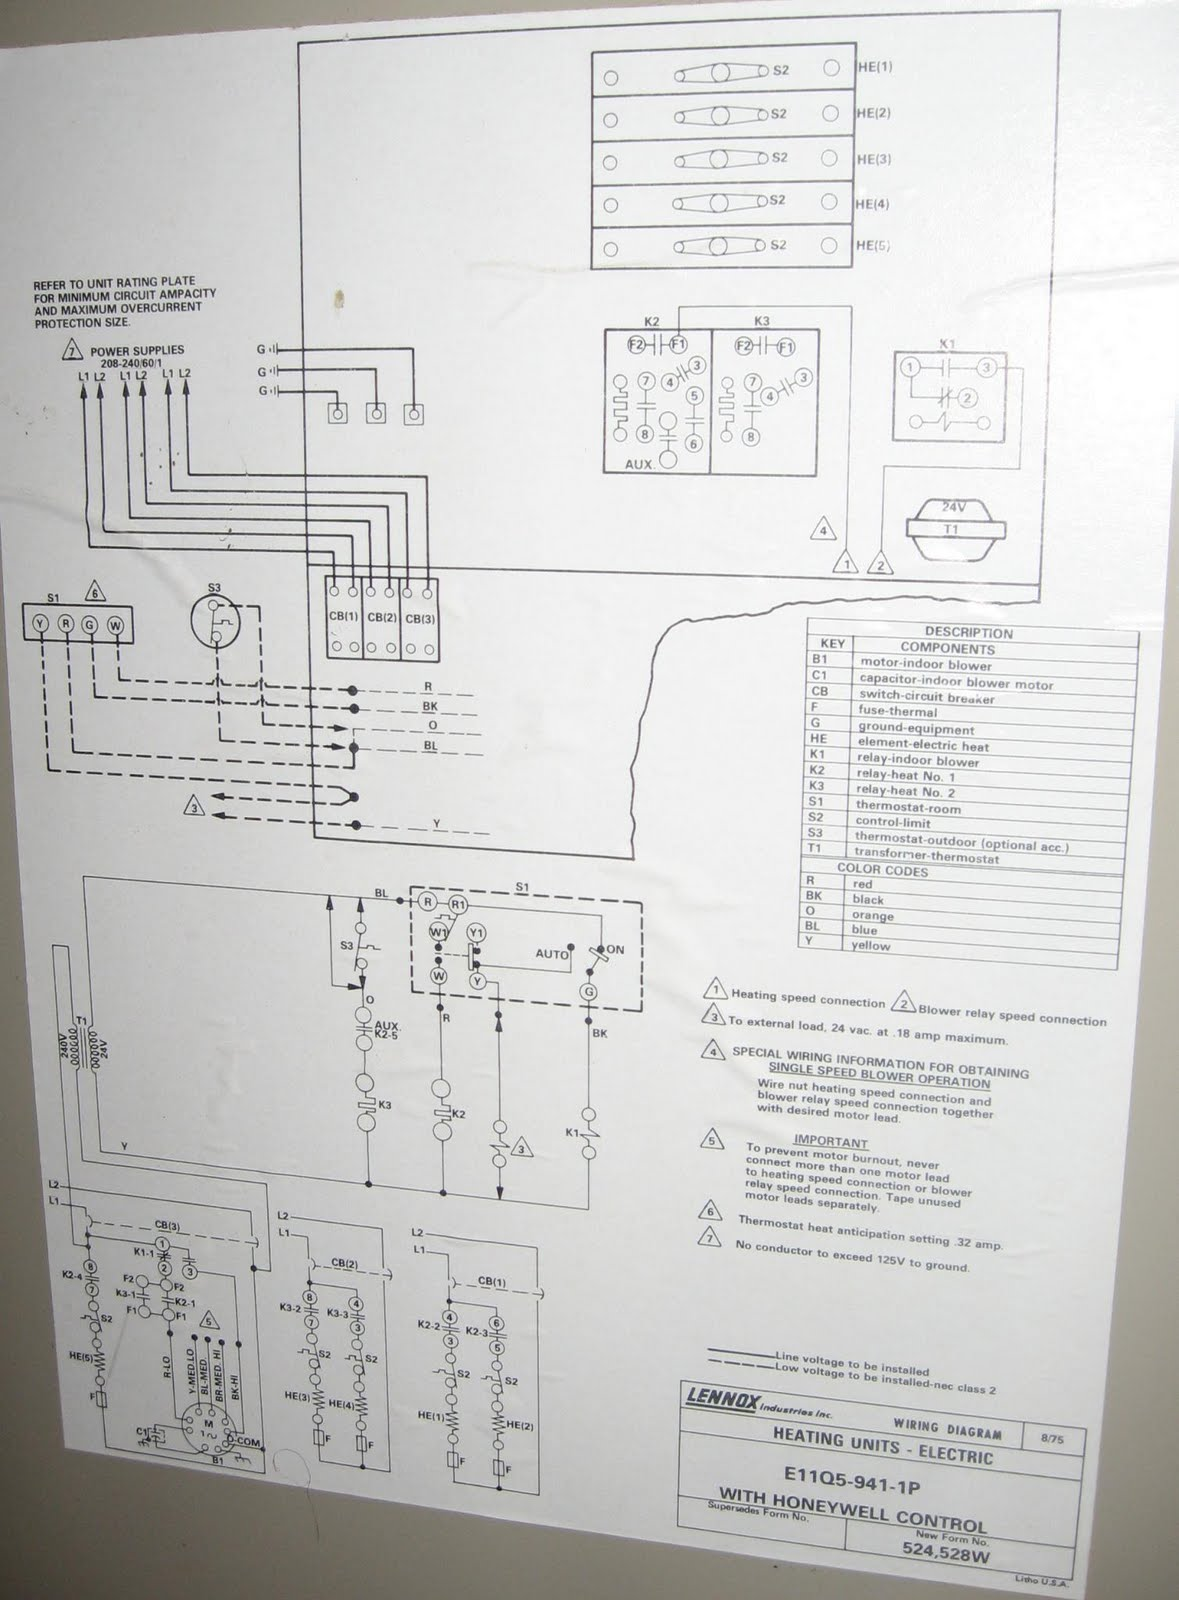 lennox furnace blower wiring diagram model at original electric furnace [ 1179 x 1600 Pixel ]